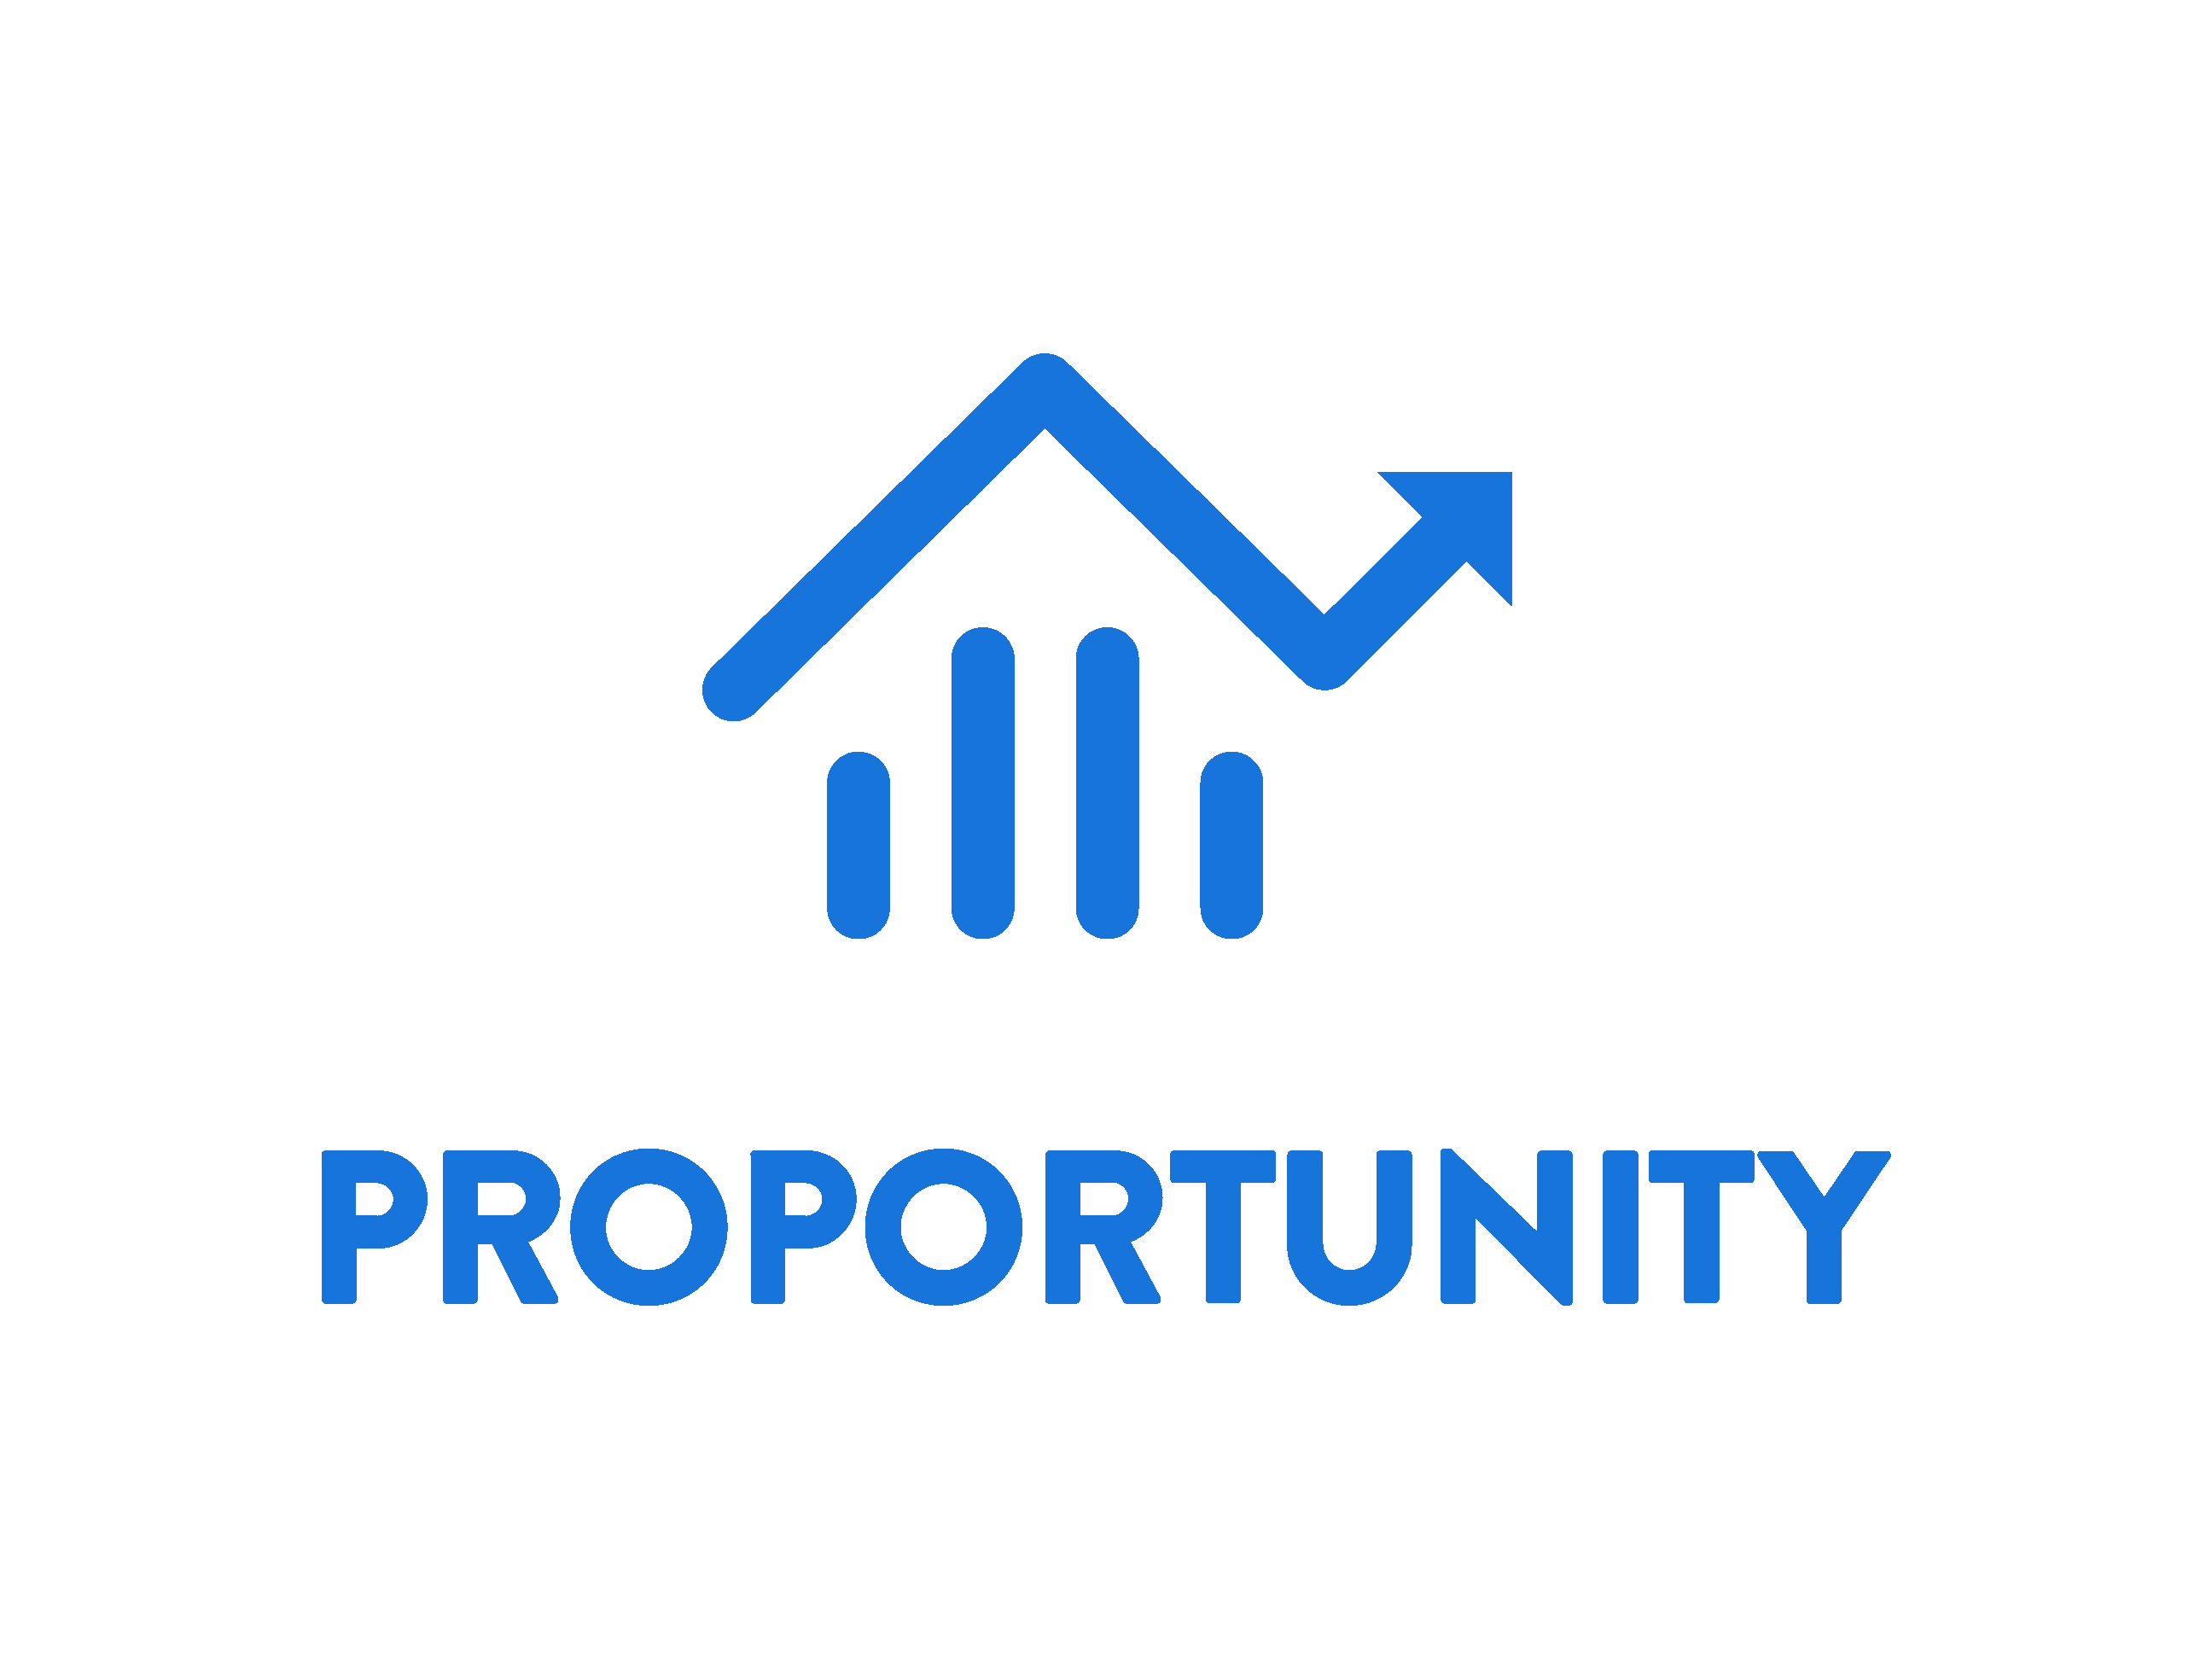 Logo of PropTech startup Proportunity